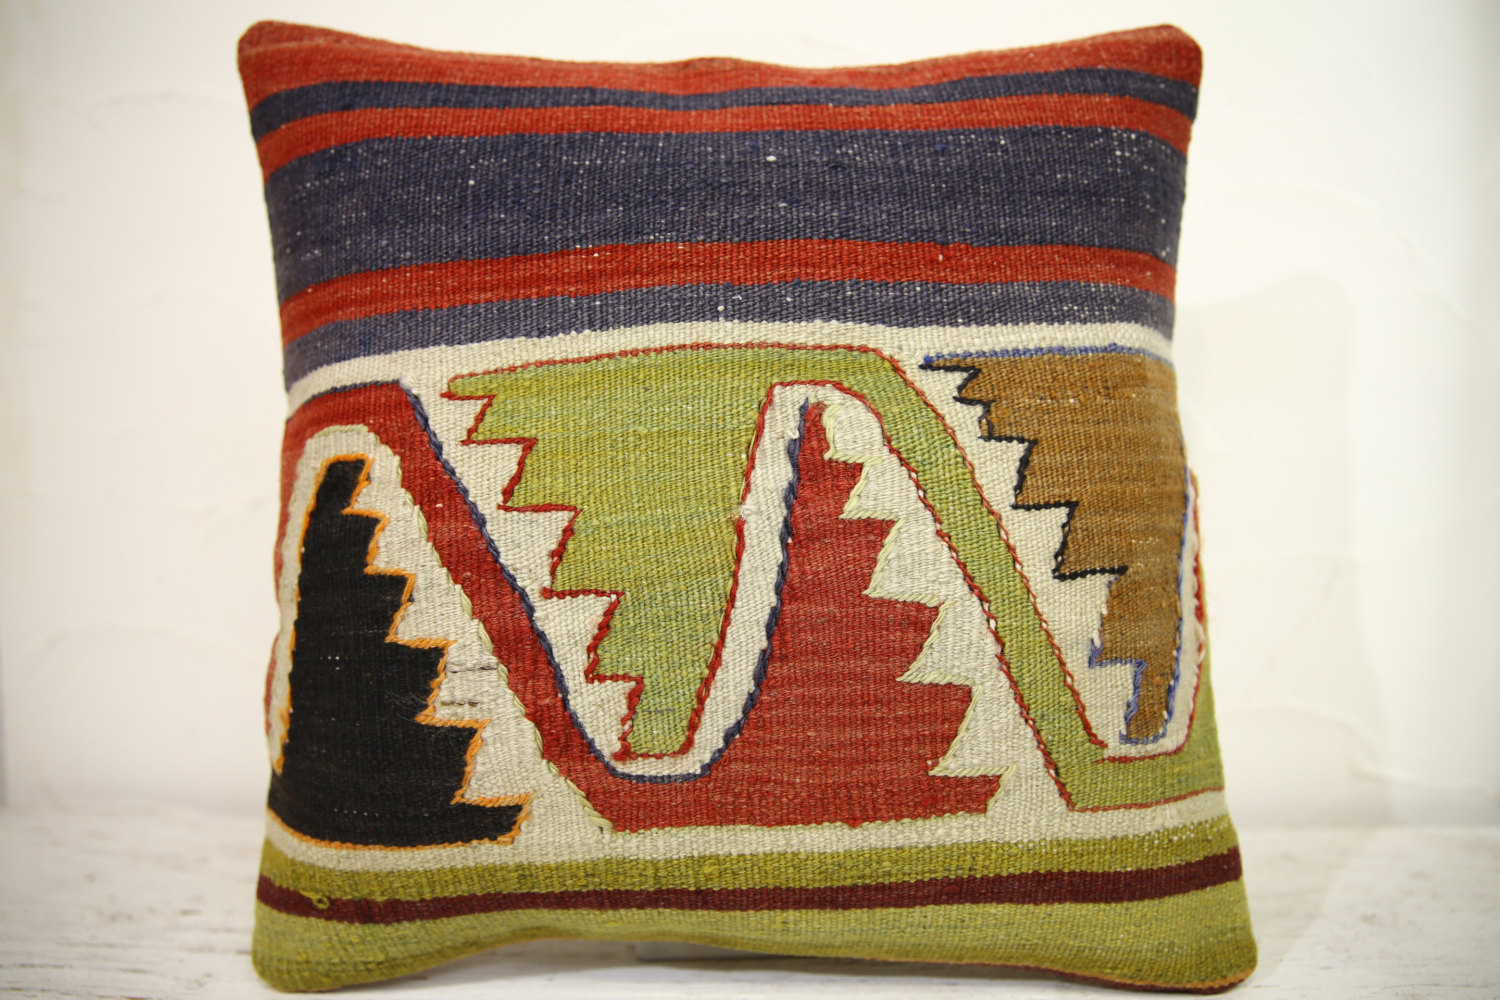 Kilim Pillows | 16x16 | Turkish pillows | 1240 | Accent Pillow,Decorative Pillow